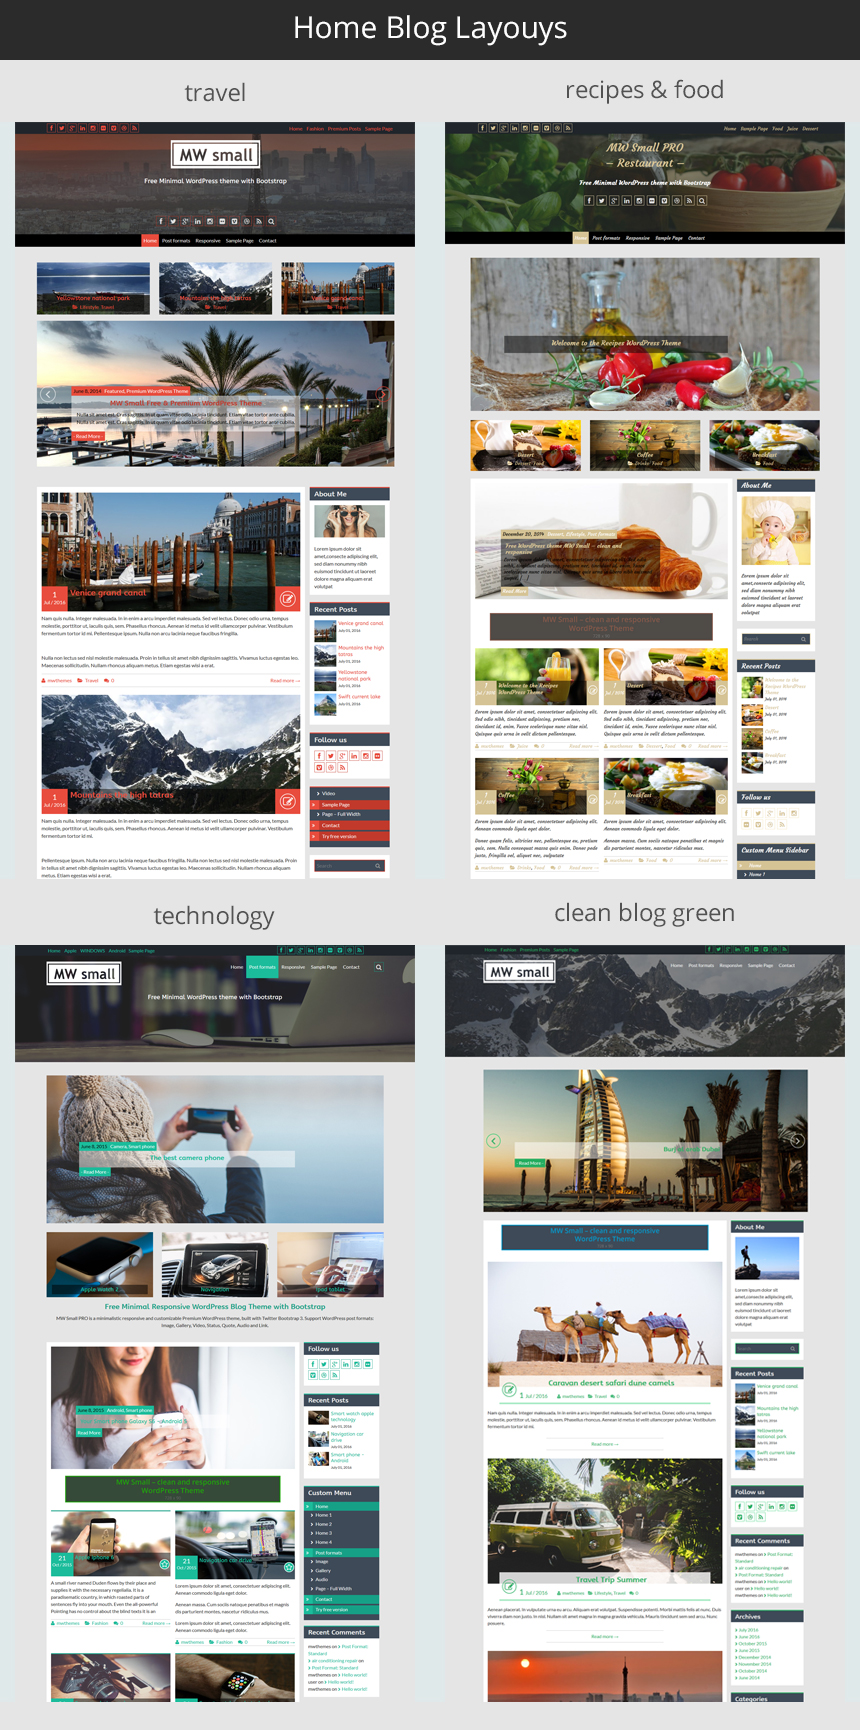 mw-small-pro-blog-layout-wordpress-clean